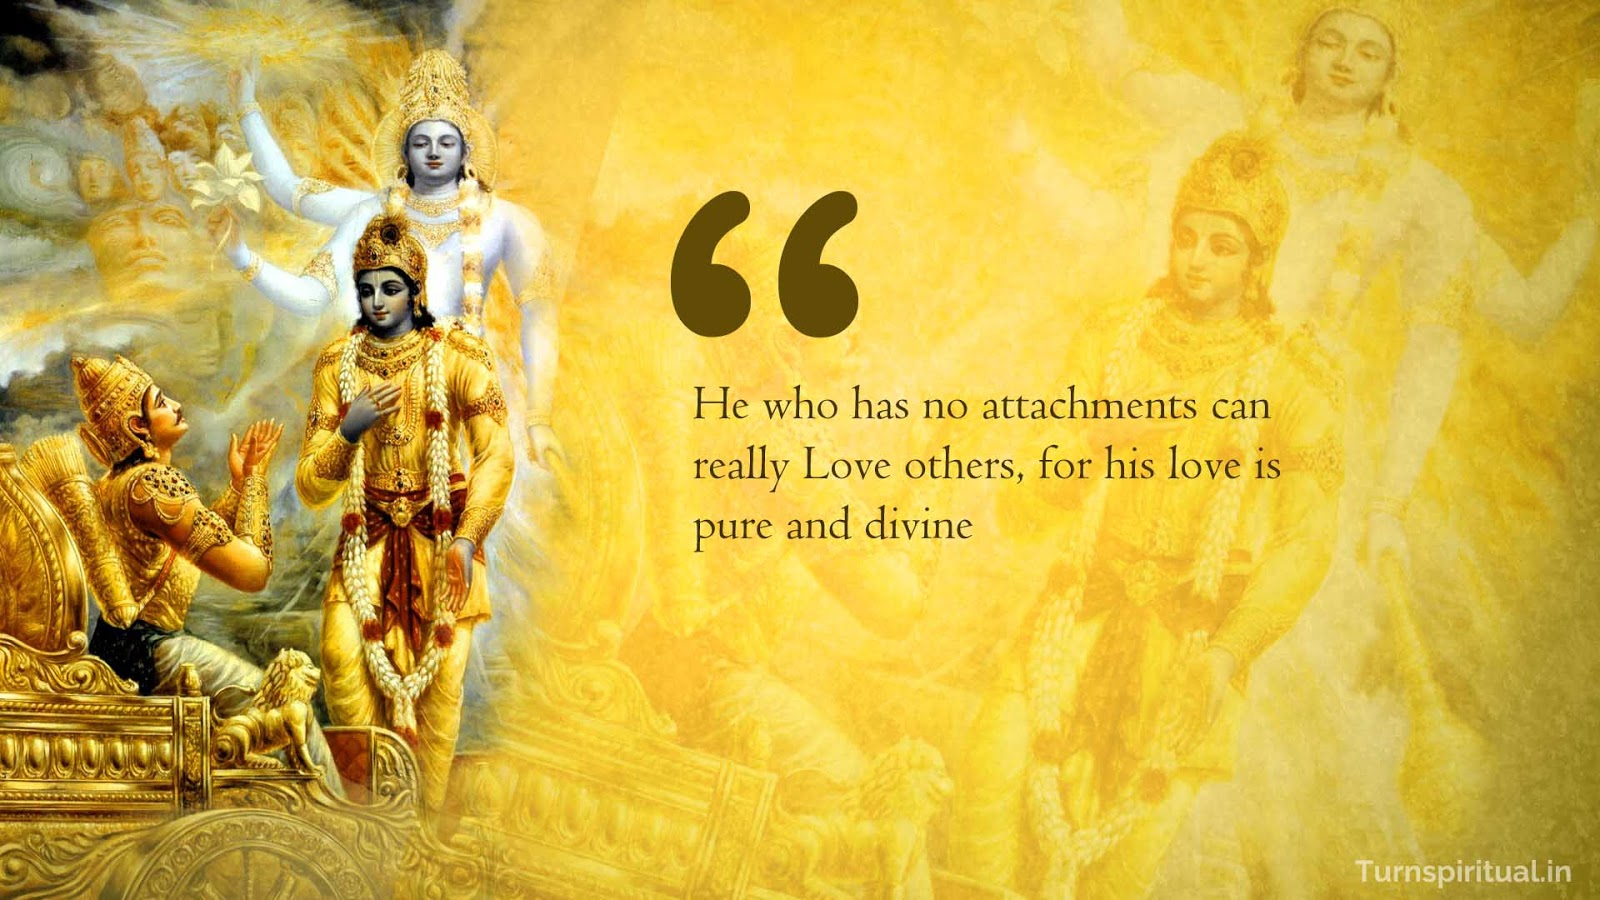 Lord Krishna Quotes 14 Quoteslord Krishna On Love From Bhagavadgita  Turnspiritual.in